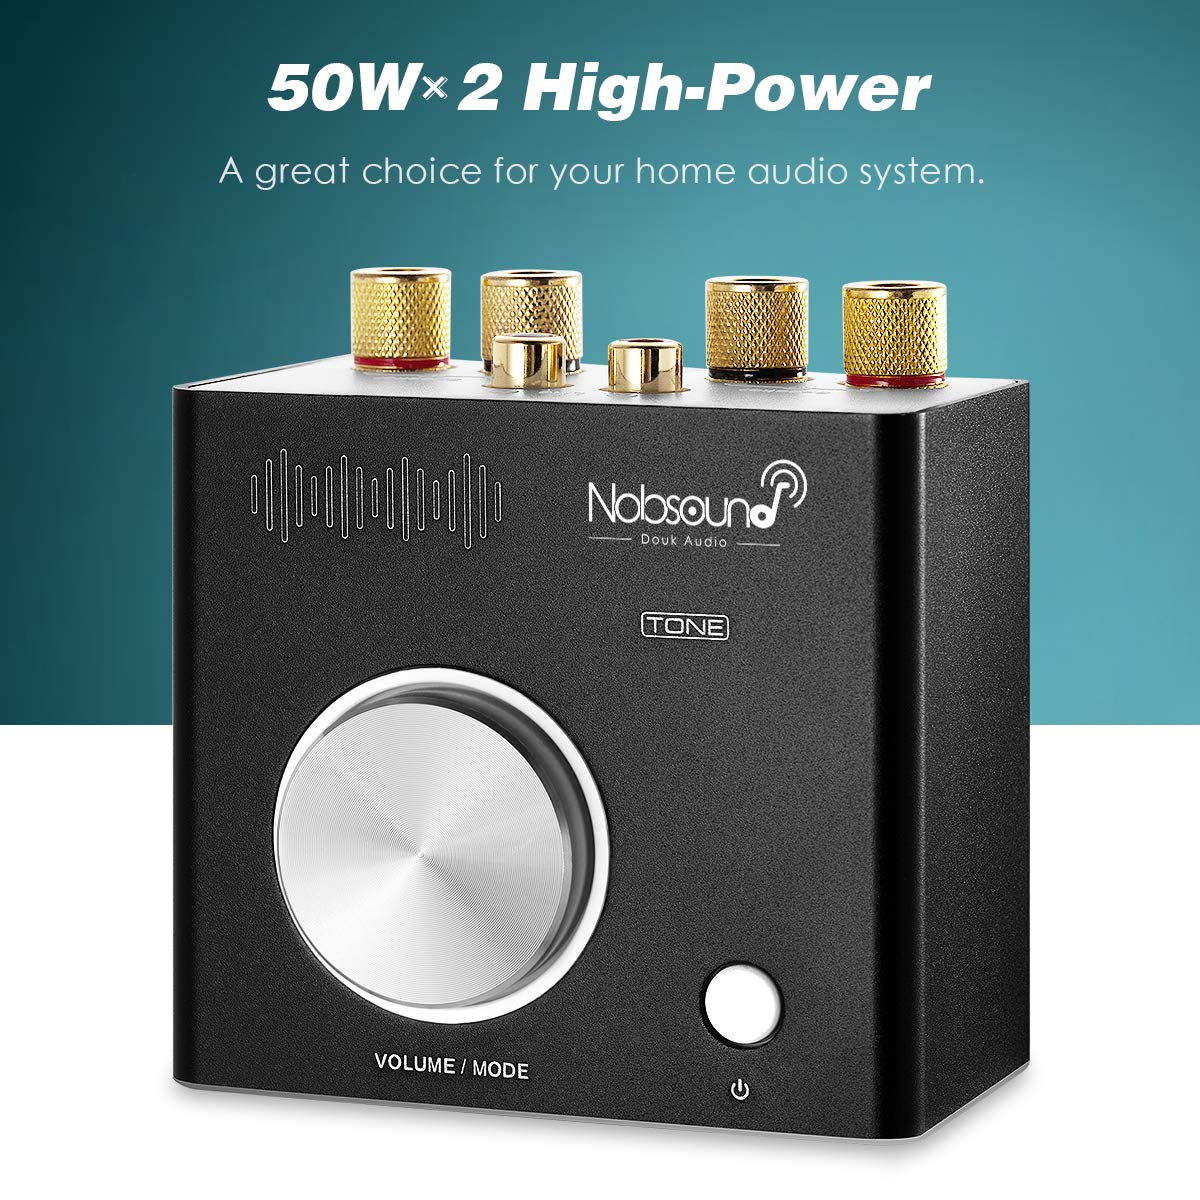 50Wx2 Nobsound Tone 100W Home Stereo Speaker System Sound Level Black Multifunctional Bluetooth Hi-Fi Audio Amp,Headphone Amplifier RCA AUX USB